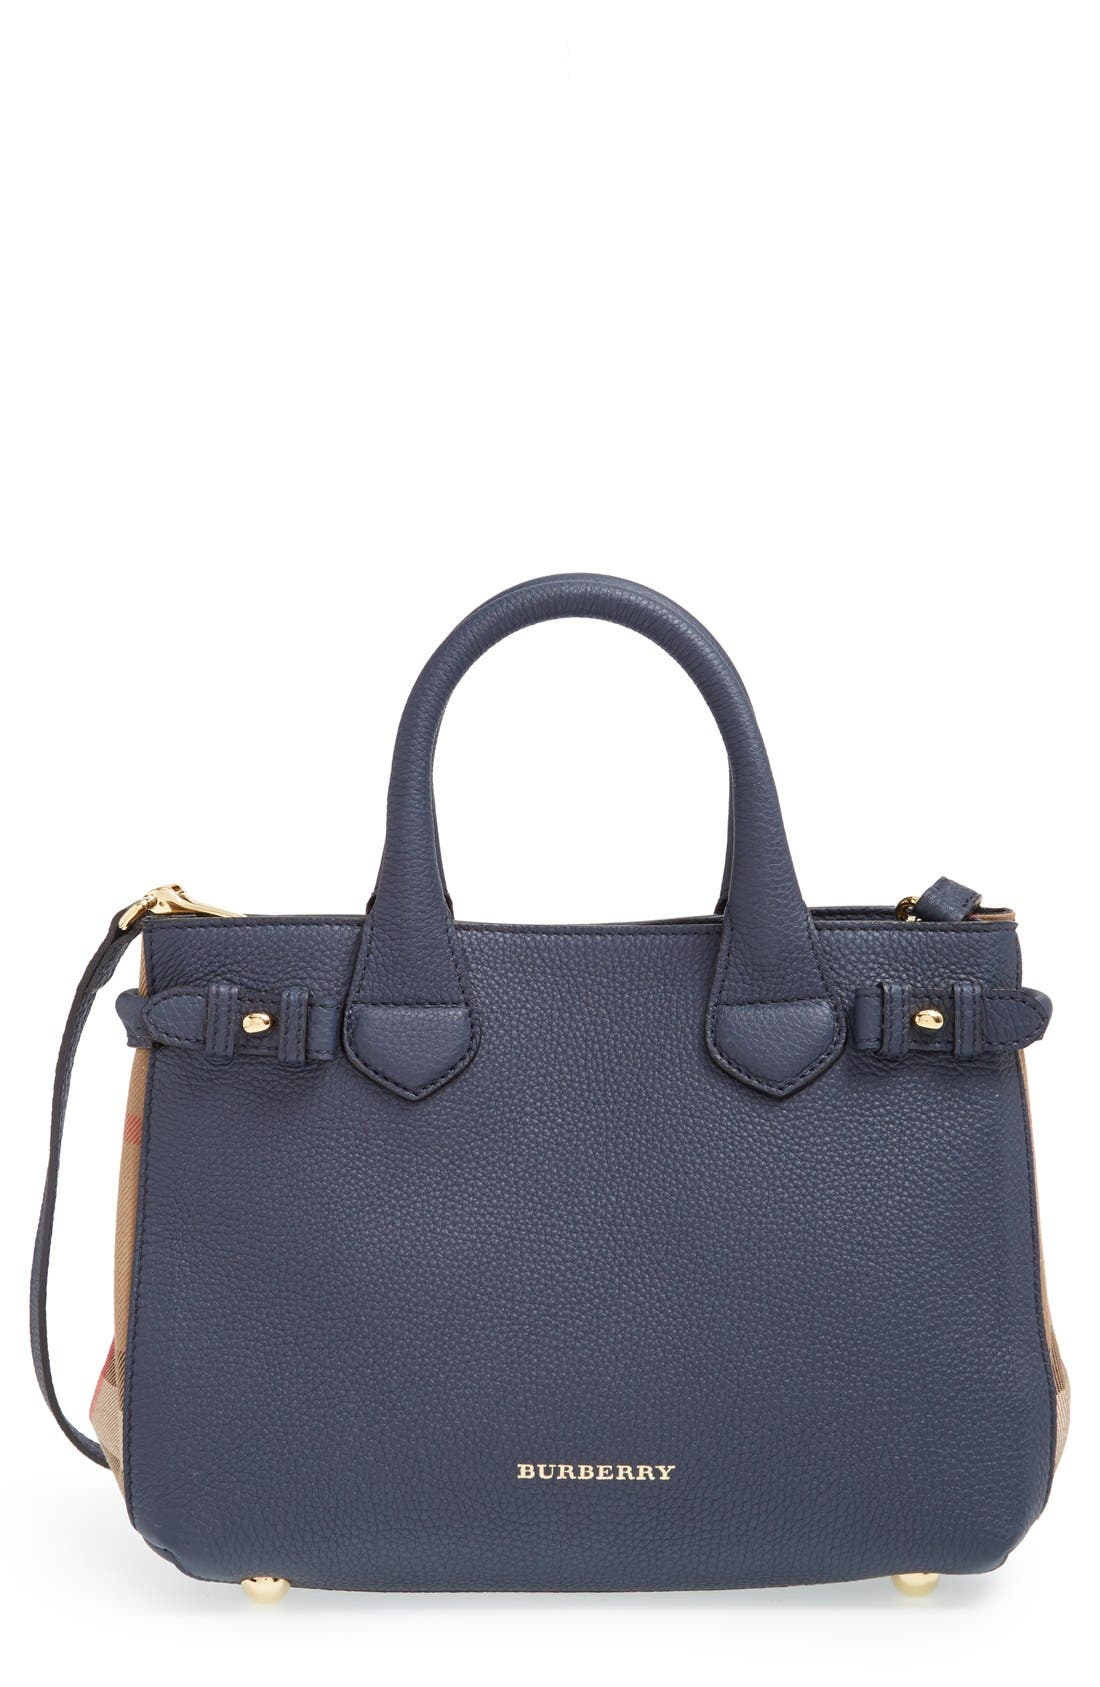 Alternate Image 1 Selected - Burberry 'Small Banner' House Check Leather Tote